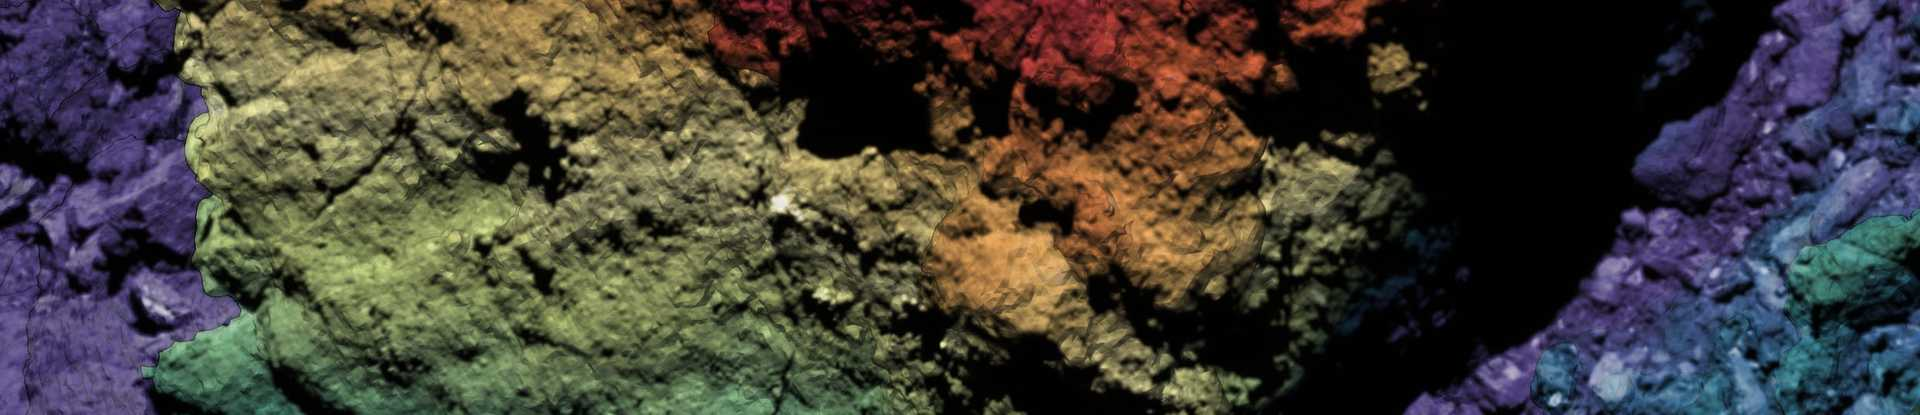 Press Release-SwRI scientist studies tiny craters on Bennu boulders to understand asteroid's age